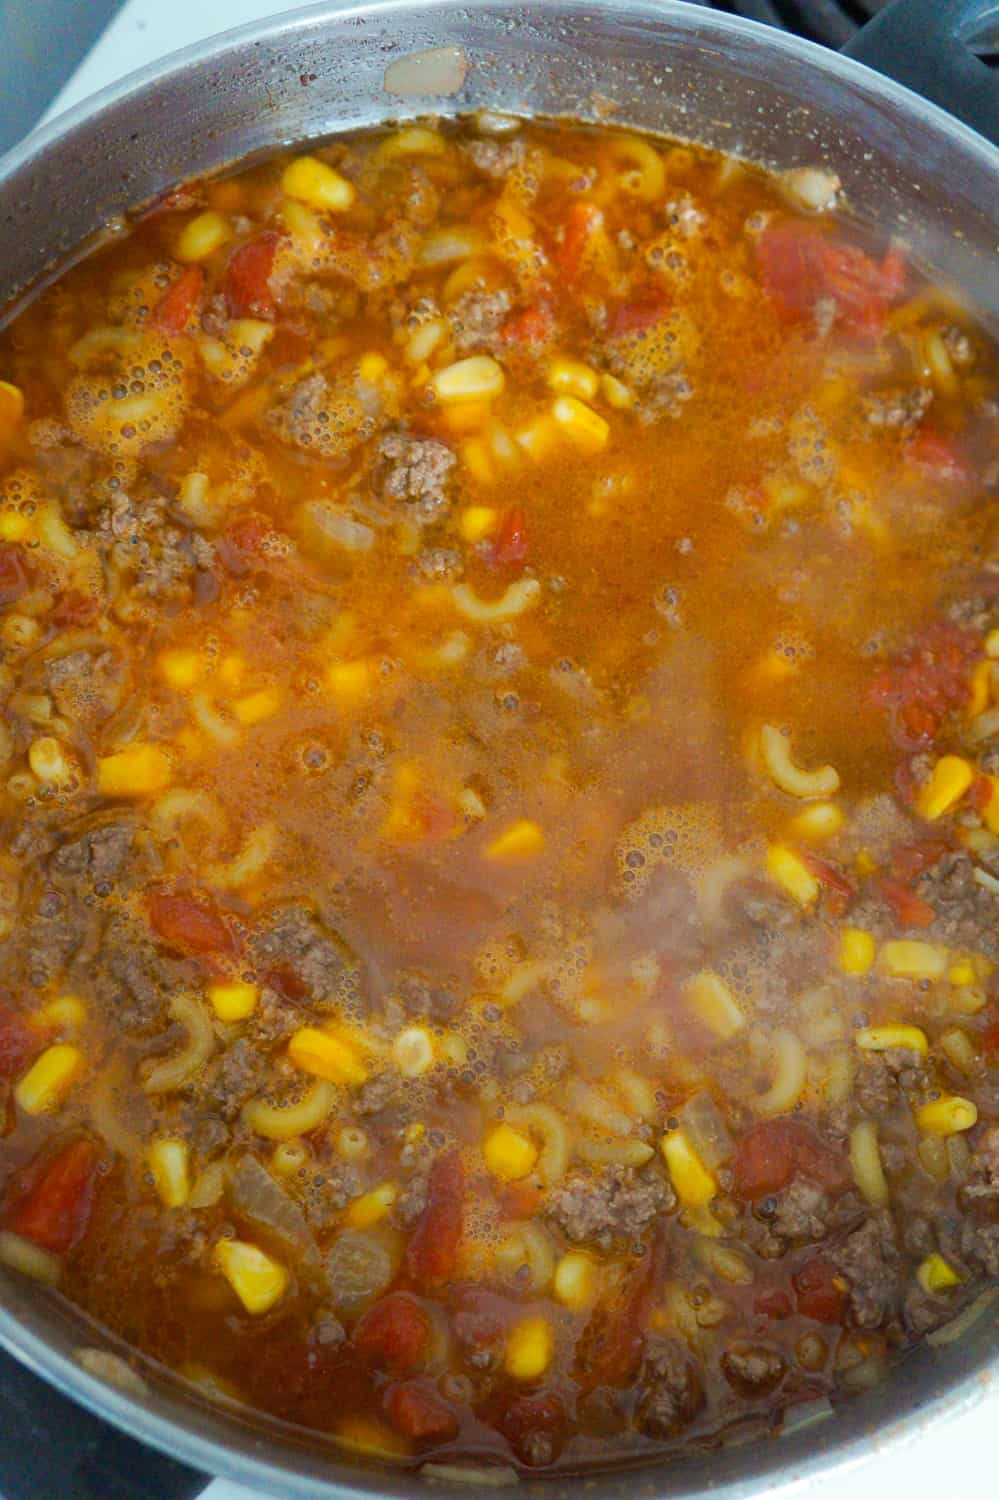 beef goulash simmering in a large pot